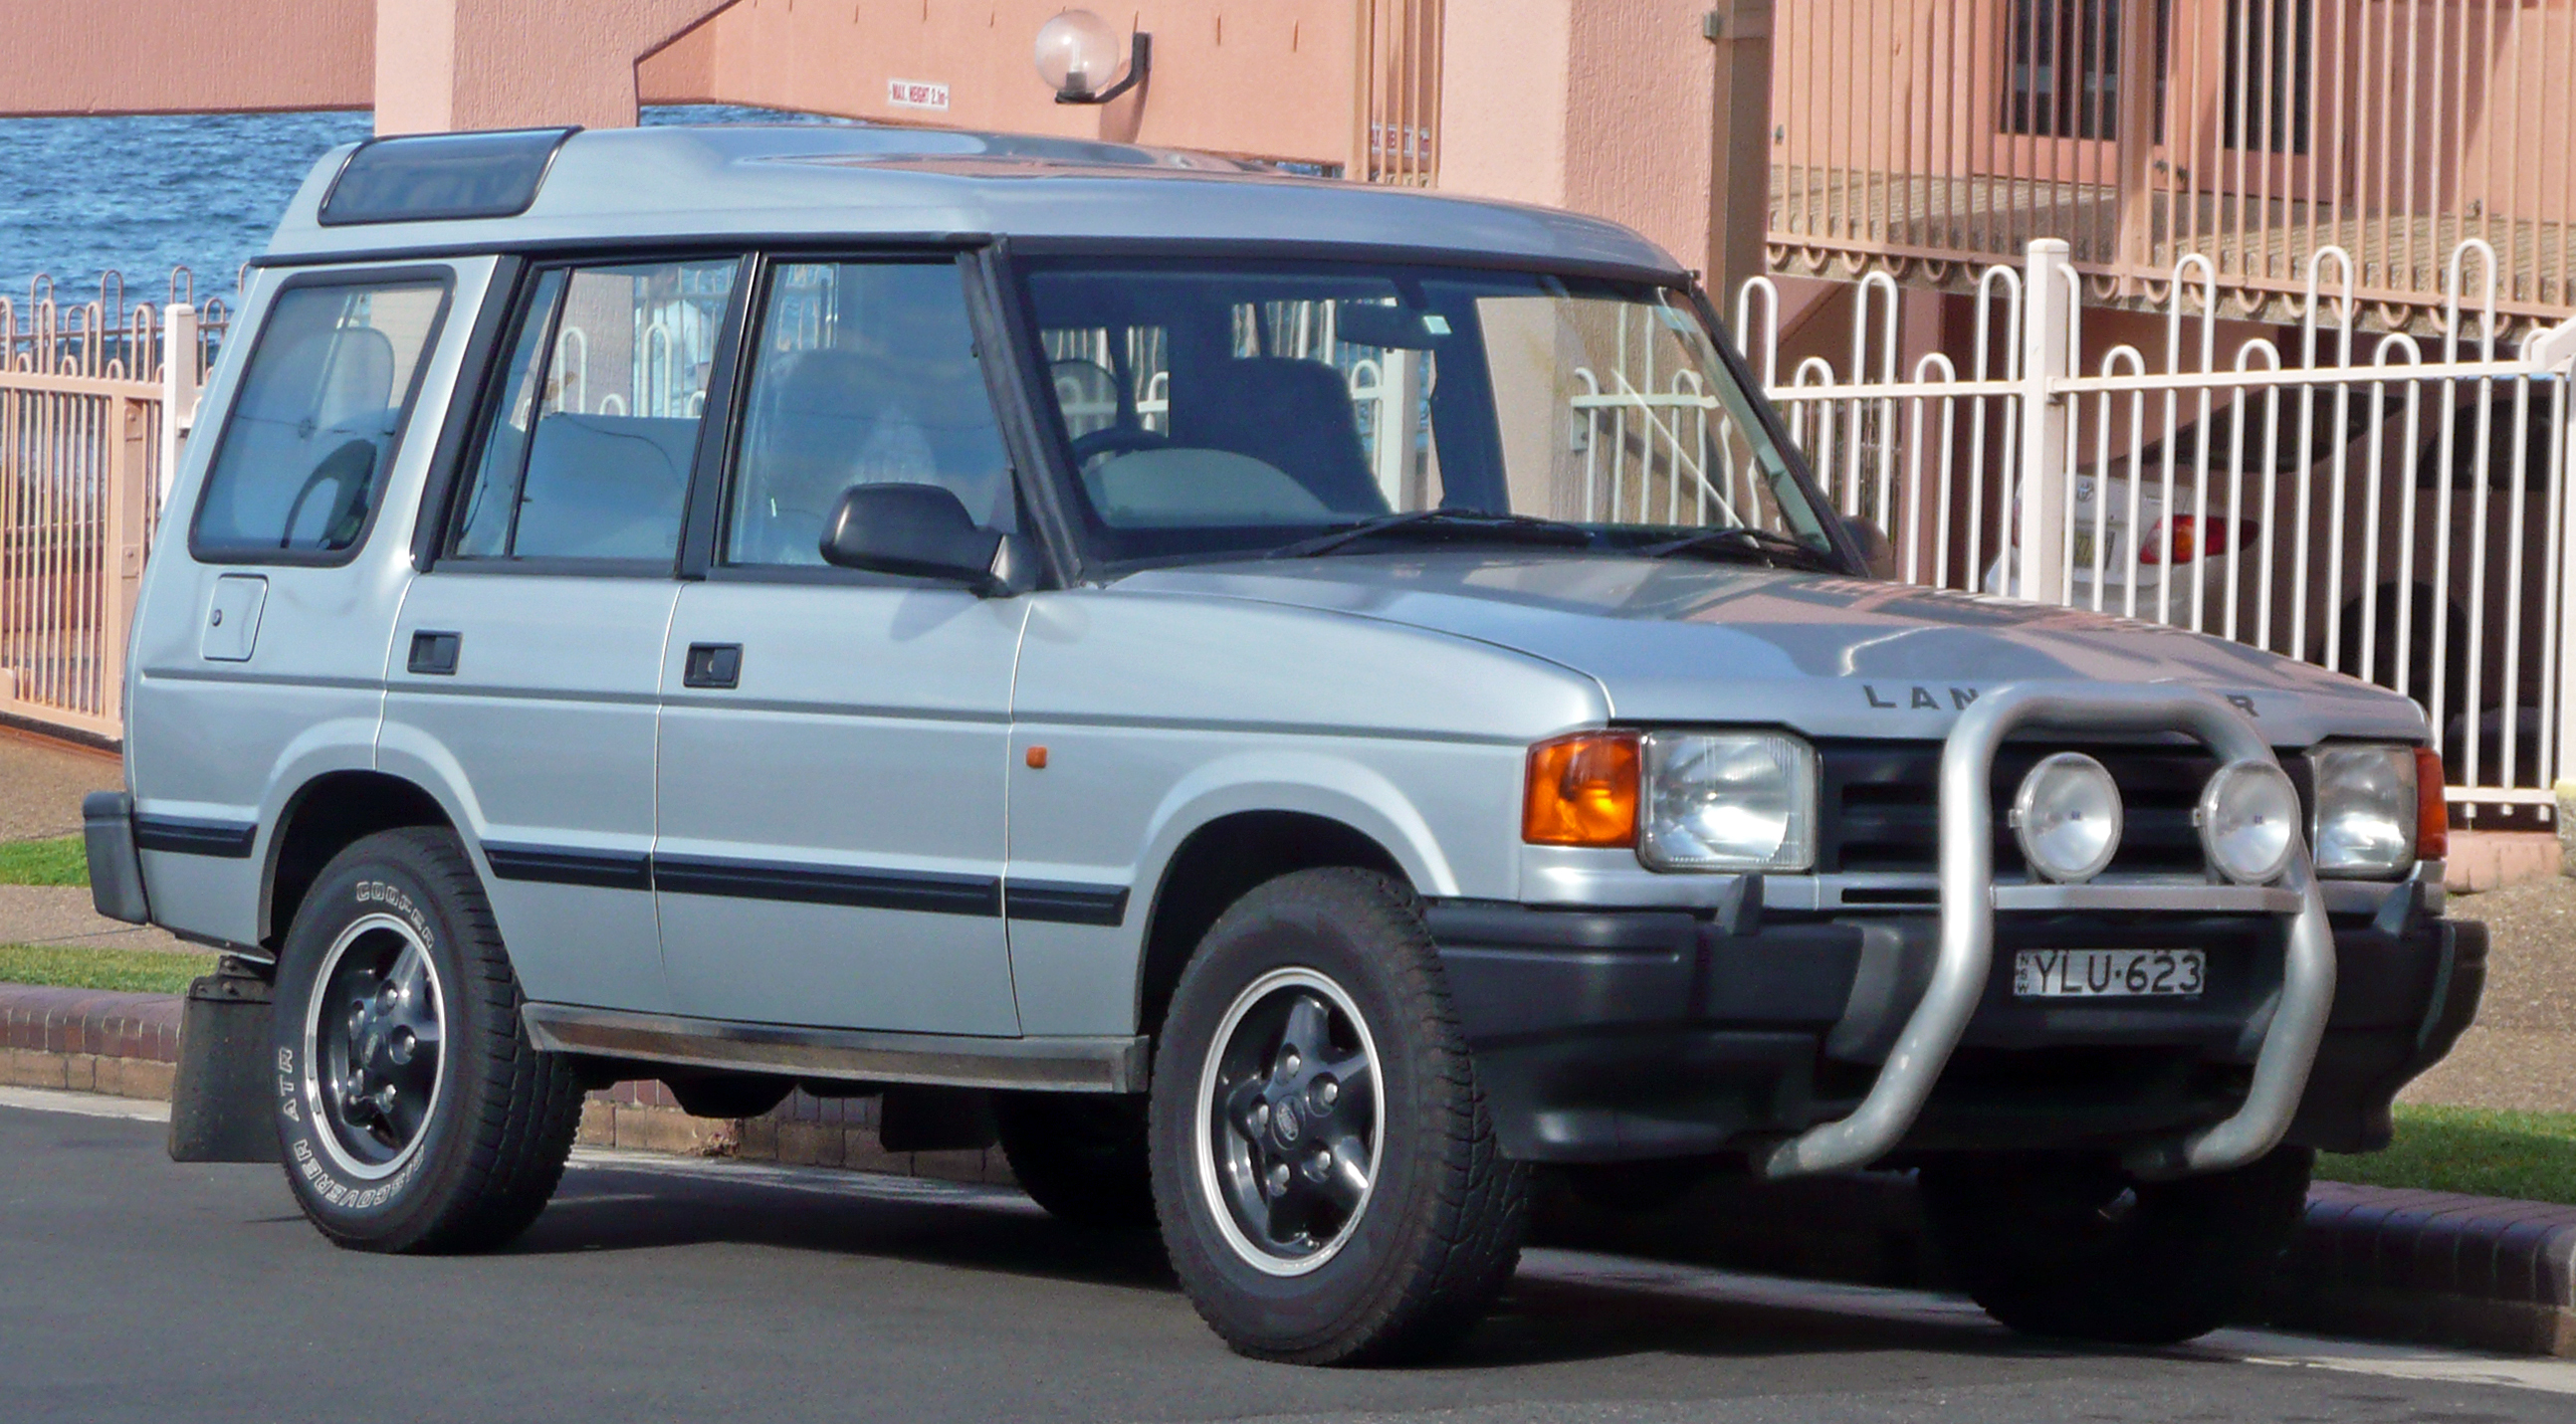 Description 1994-1997 Land Rover Discovery V8i 5-door wagon 01.jpg